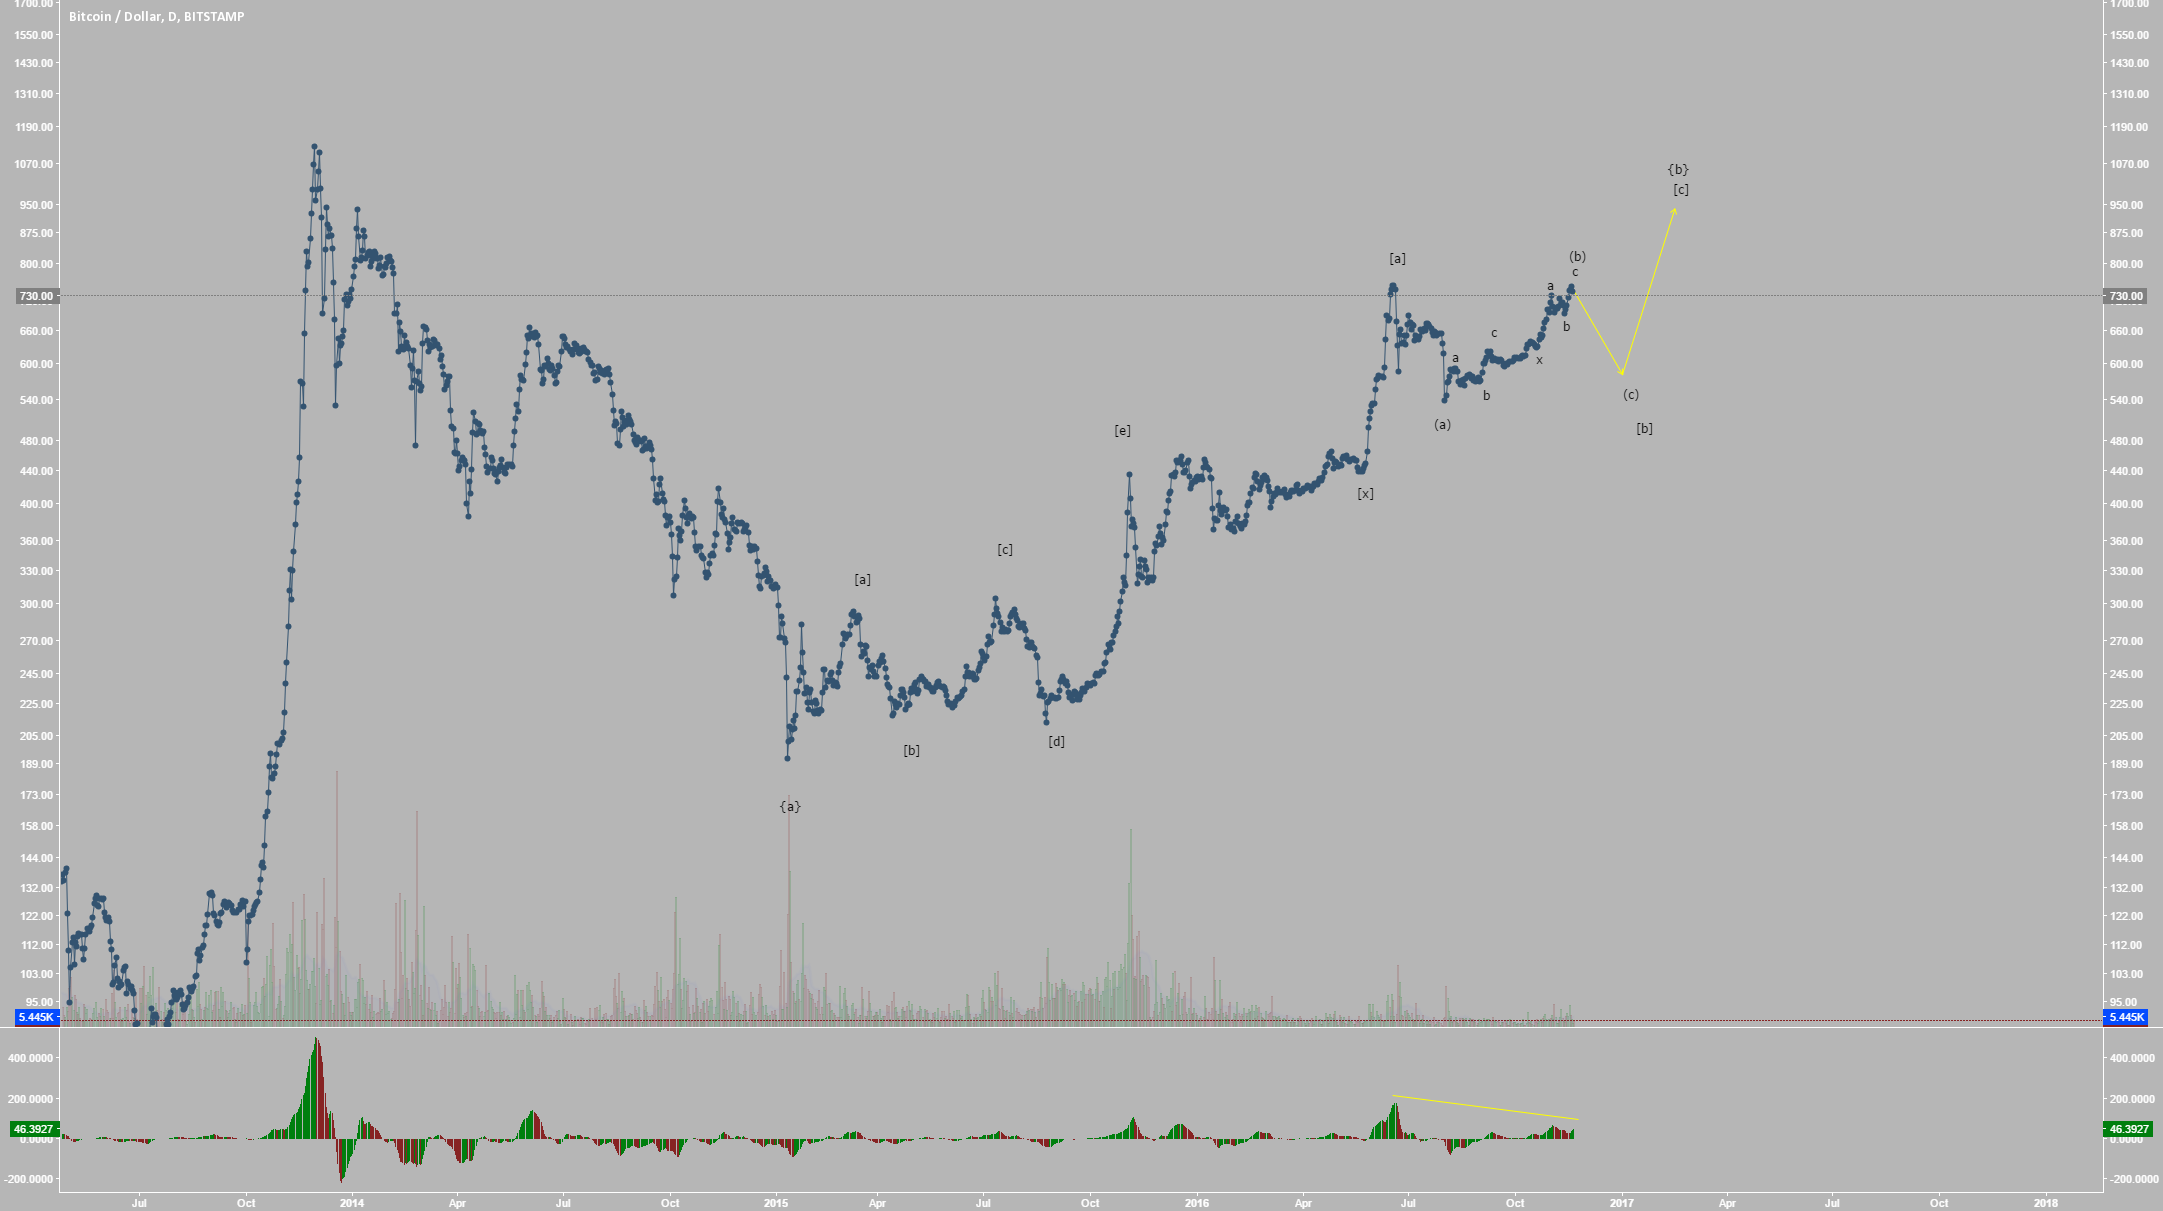 Bitcoin Preparing for Deep Retracement to Sub-600 (Elliott Wave)